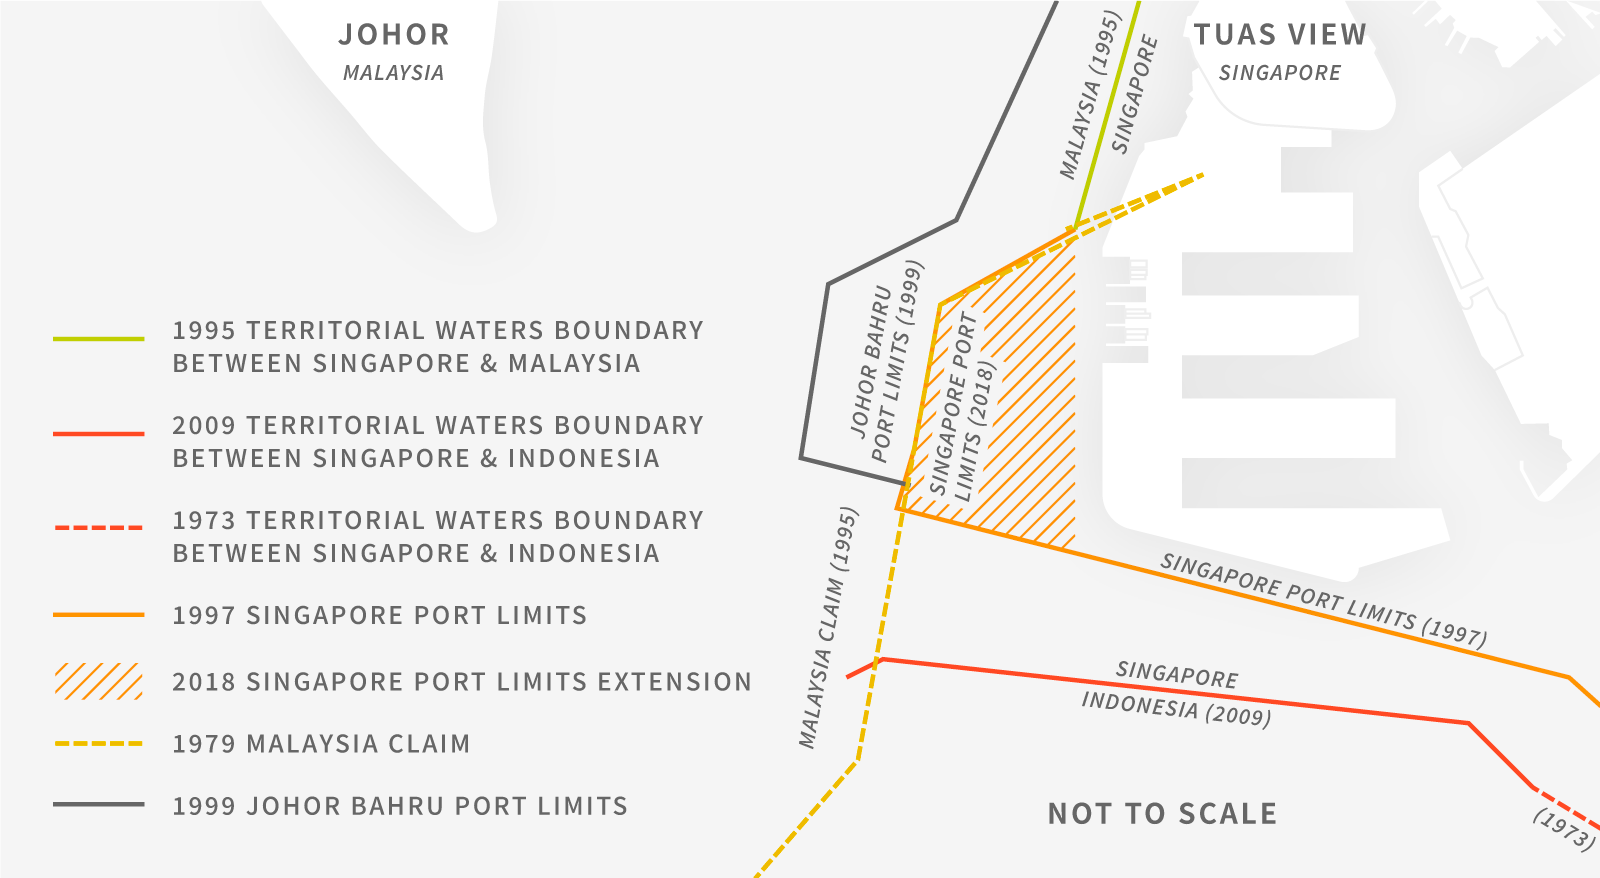 Contested port limits in the Johor Strait between Malaysia and Singapore